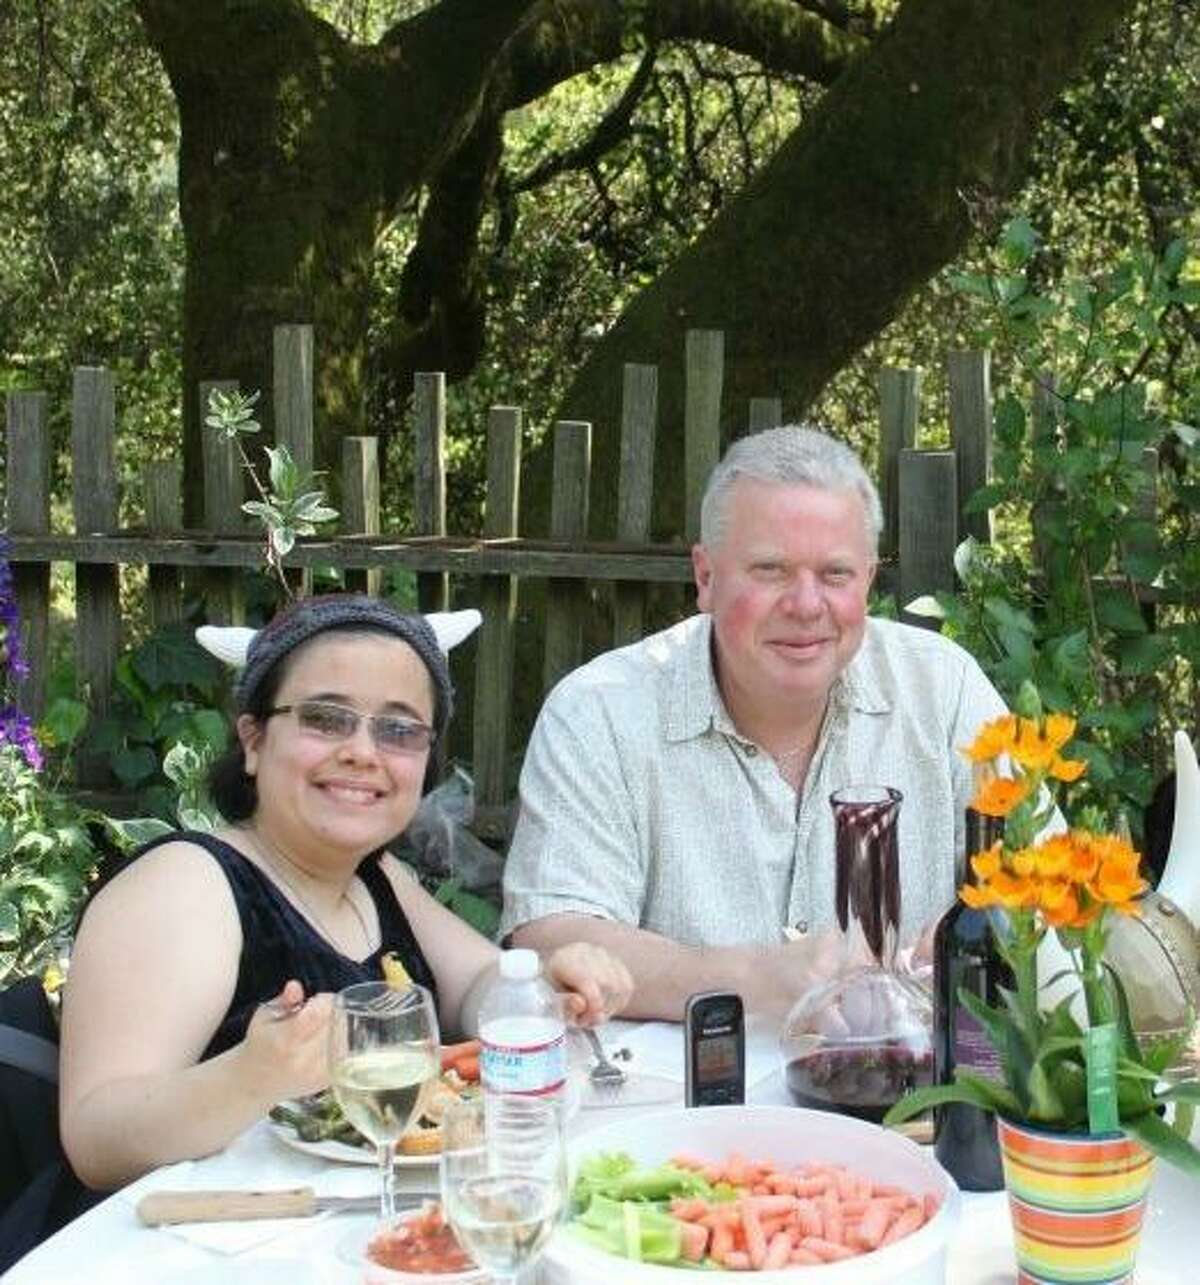 Michael Hanson and his daughter Christina enjoy a meal together in Sonoma County. Christina died when the Tubbs Fire destroyed their home near Santa Rosa on Oct. 9. Michael Hanson is recovering from severe burns at St. Francis Memorial Hospital in San Francisco.